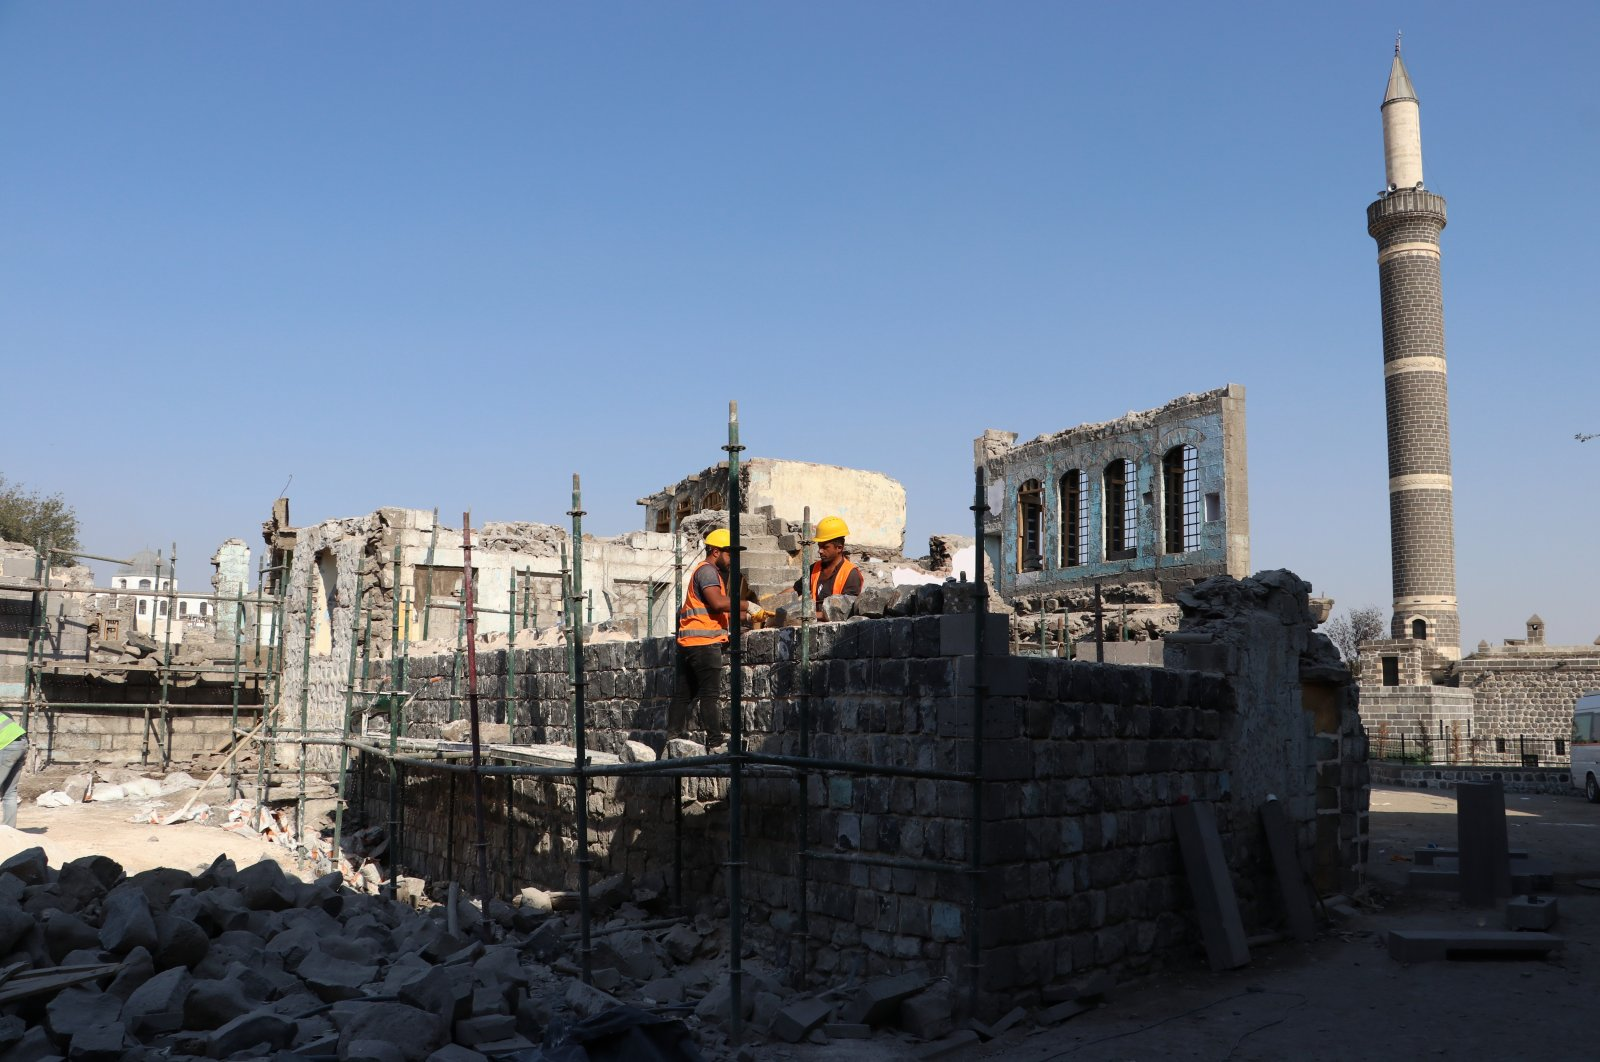 Workers restore a house, one of the 347 buildings damaged in the PKK terror campaign back in 2015 and 2016, in the Sur district, in Diyarbak›r, southeastern Turkey, Oct. 21, 2020. (AA Photo)